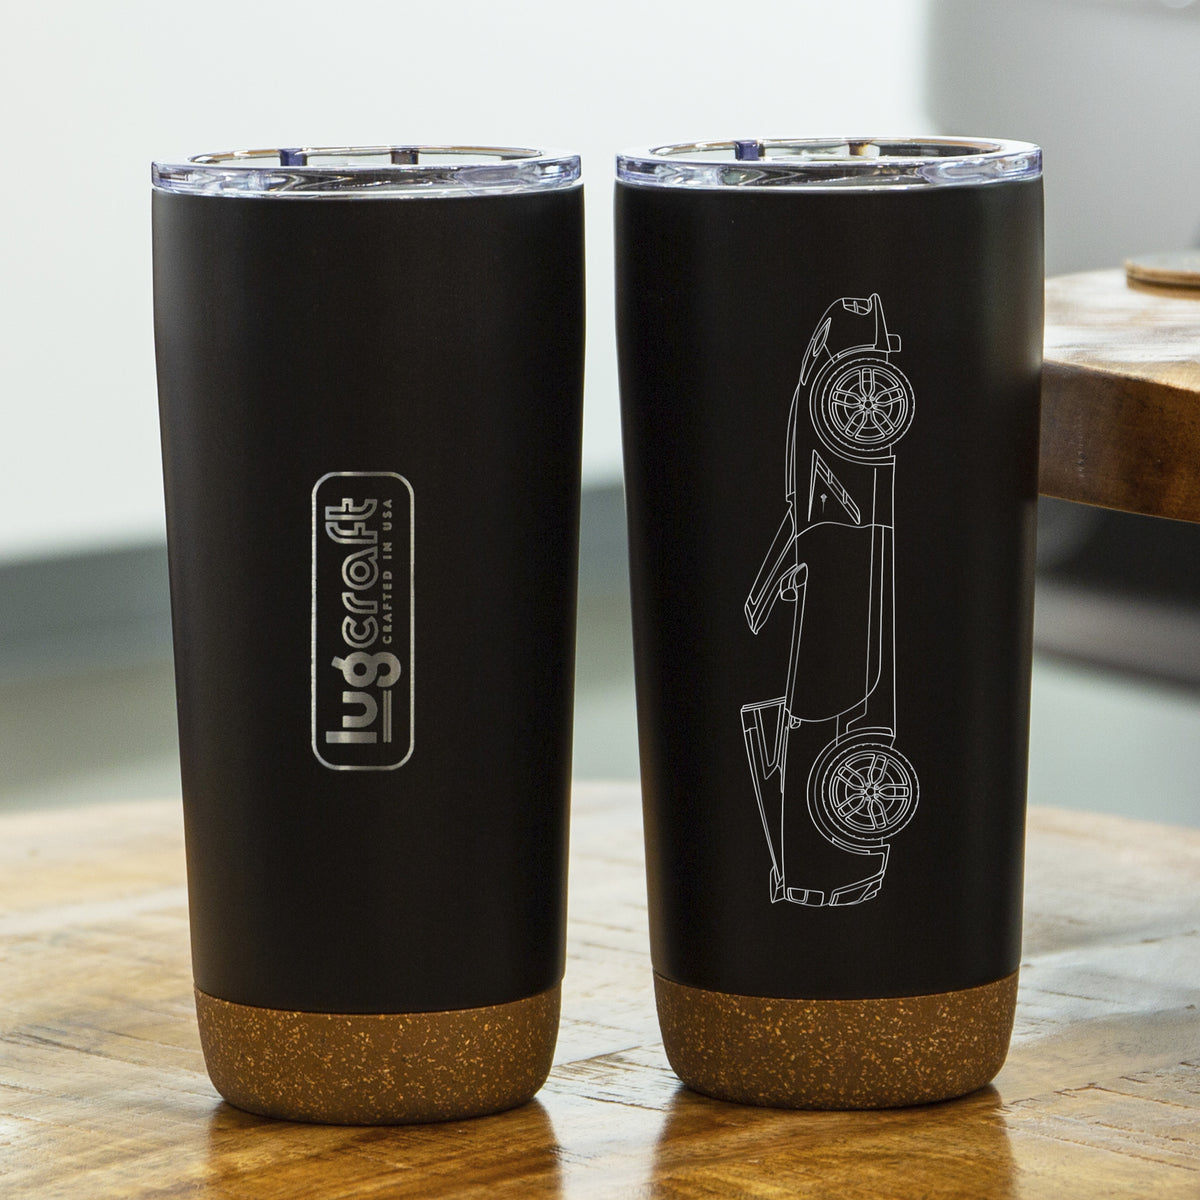 Chevy Corvette C7 Stingray Insulated Stainless Steel Coffee Tumbler - 20 oz